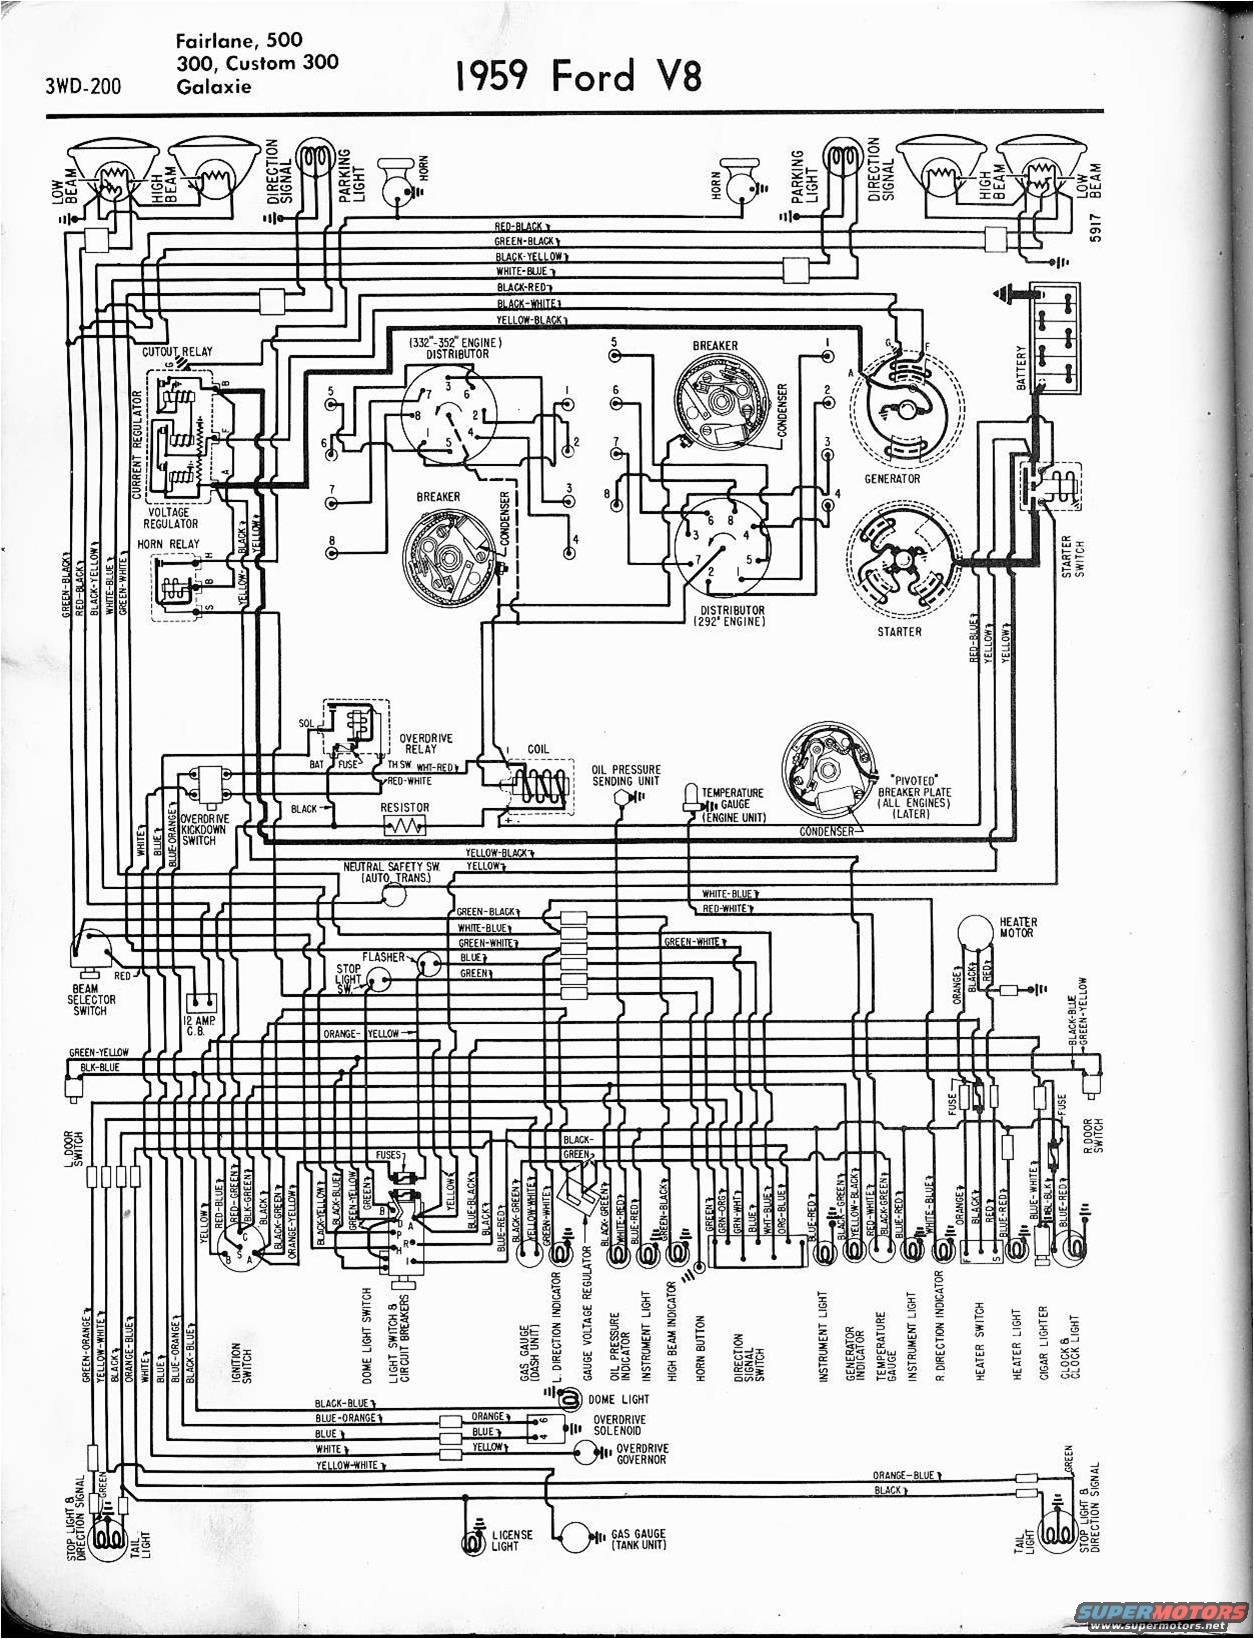 1959 ford ranchero wiring diagram